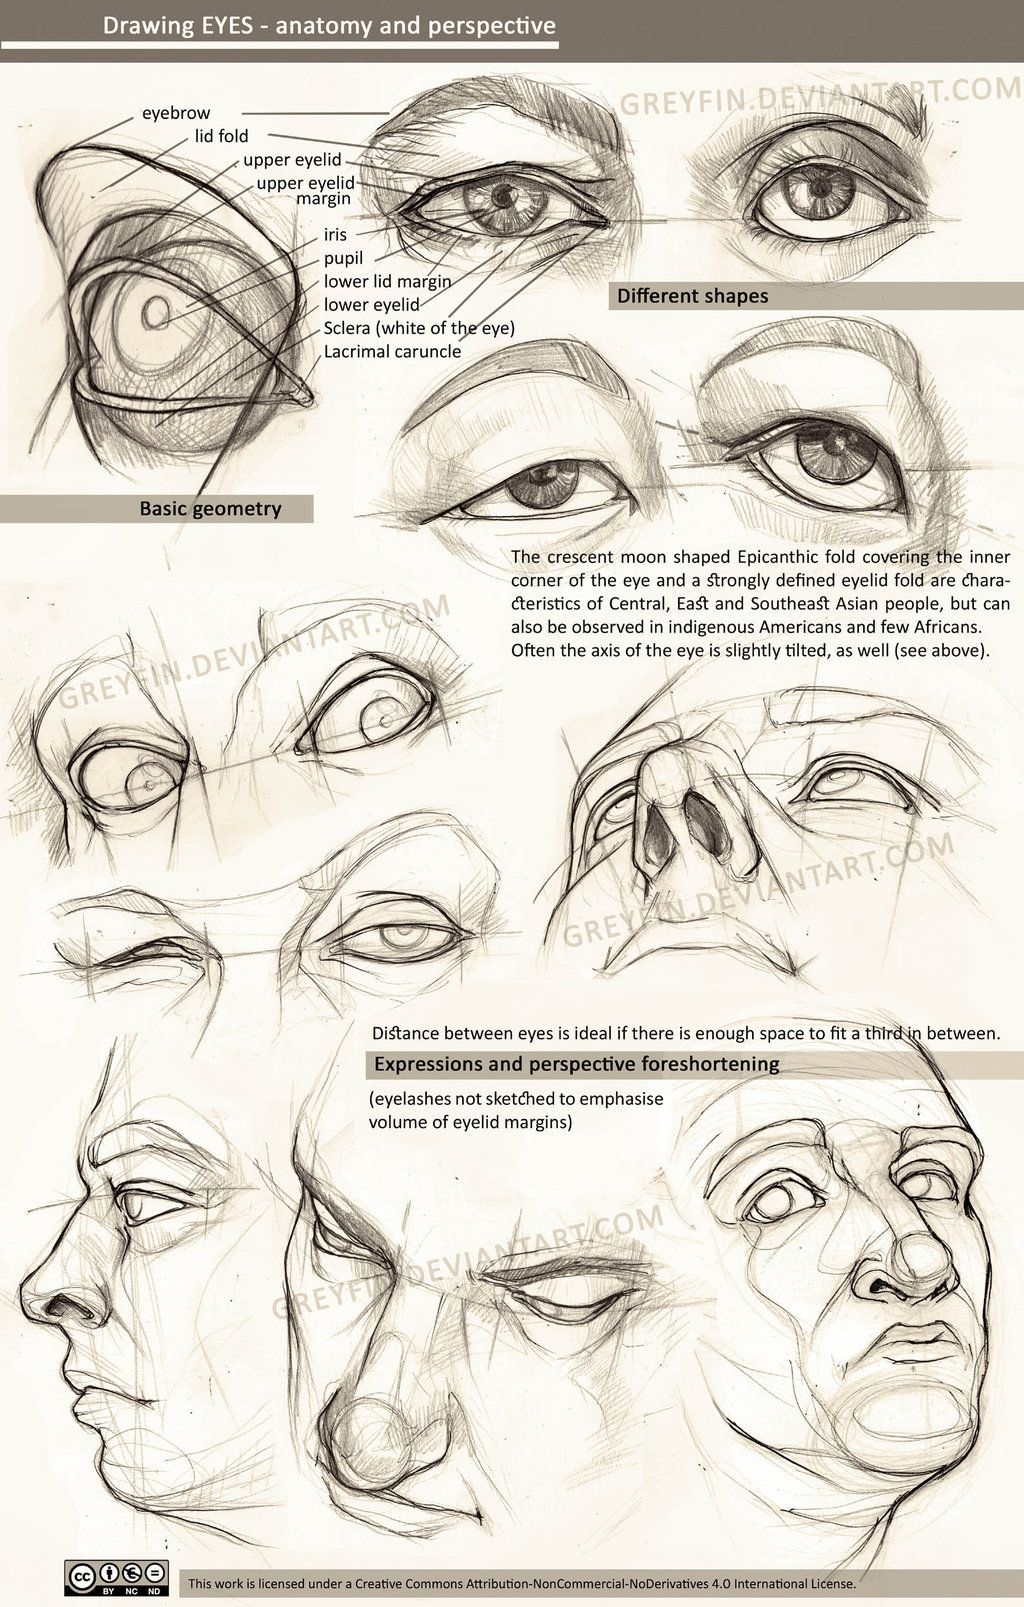 Drawing eyes - anatomy and perspective by greyfin | Drawing in 2018 ...